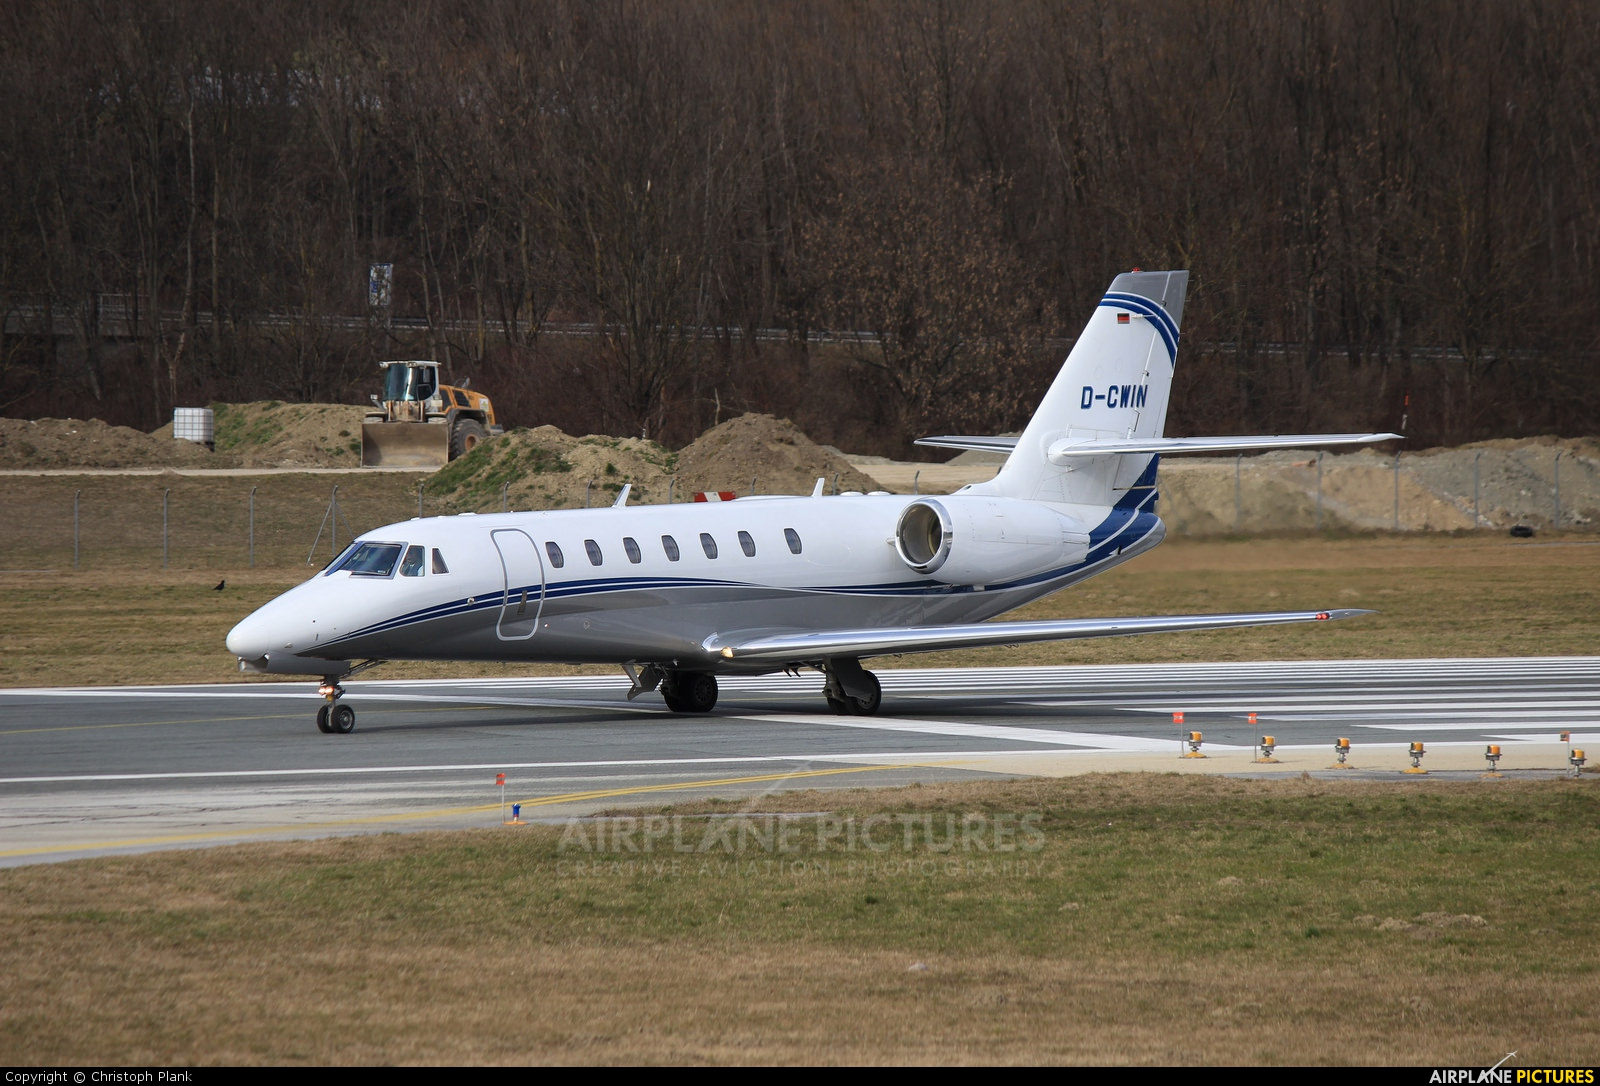 Private D-CWIN aircraft at Innsbruck